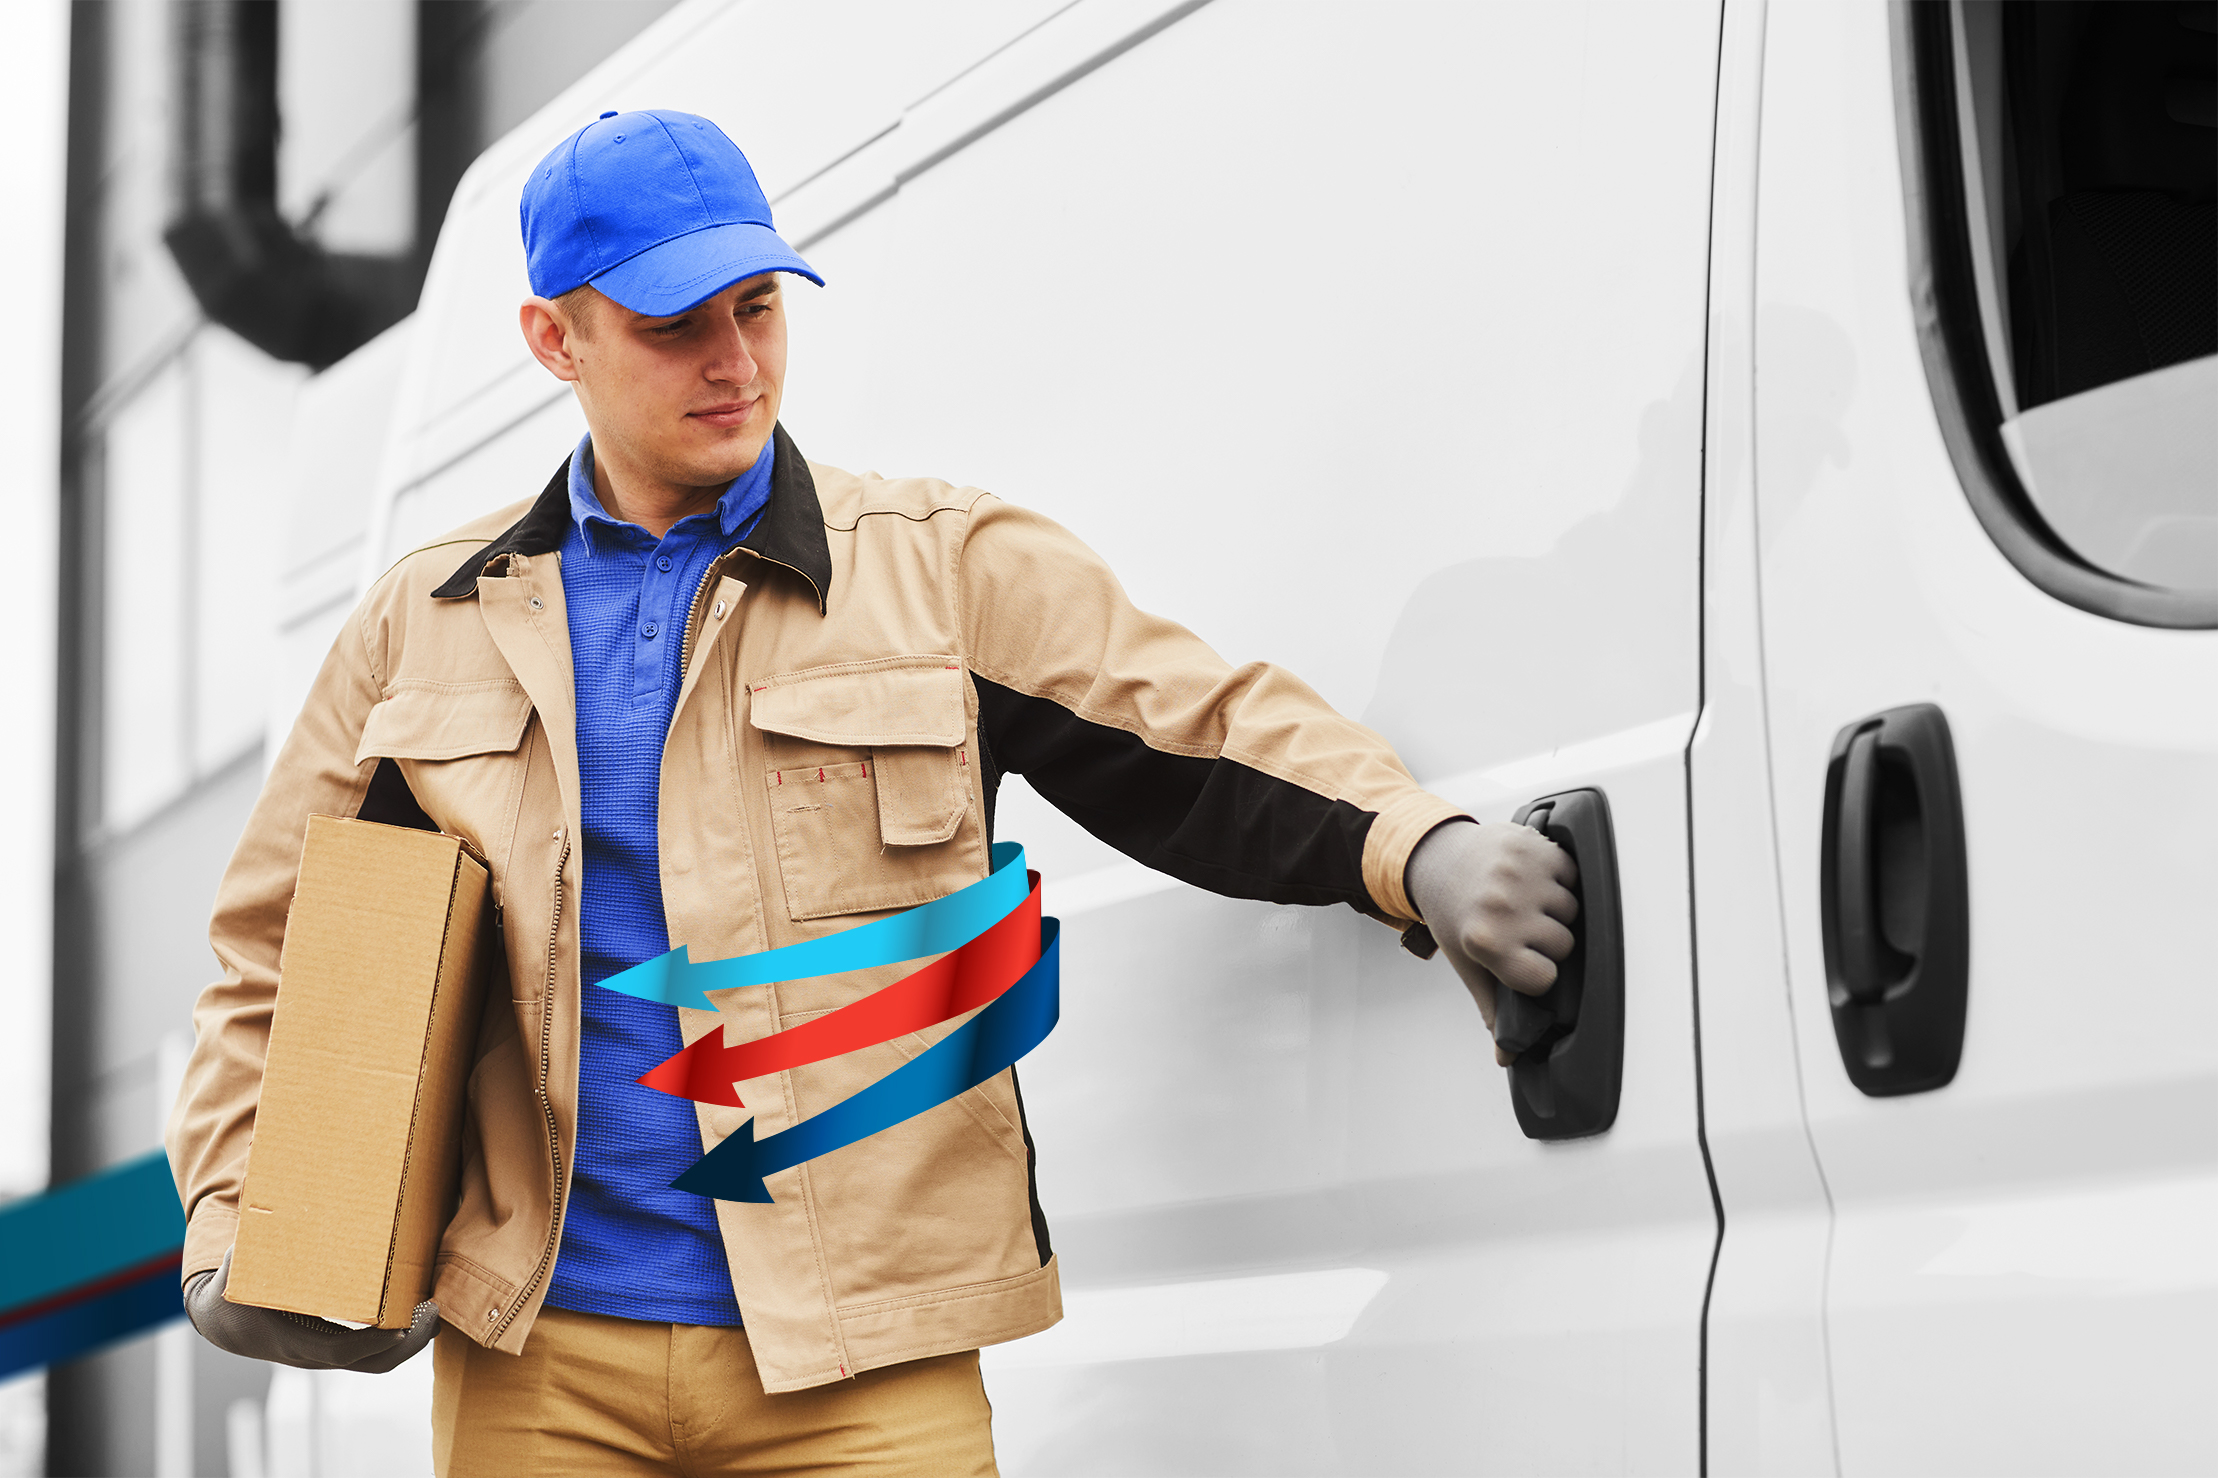 A courier male worker holding a parcel with Fleet Complete arrows wrapping around him in the process of opening a door of a white van.